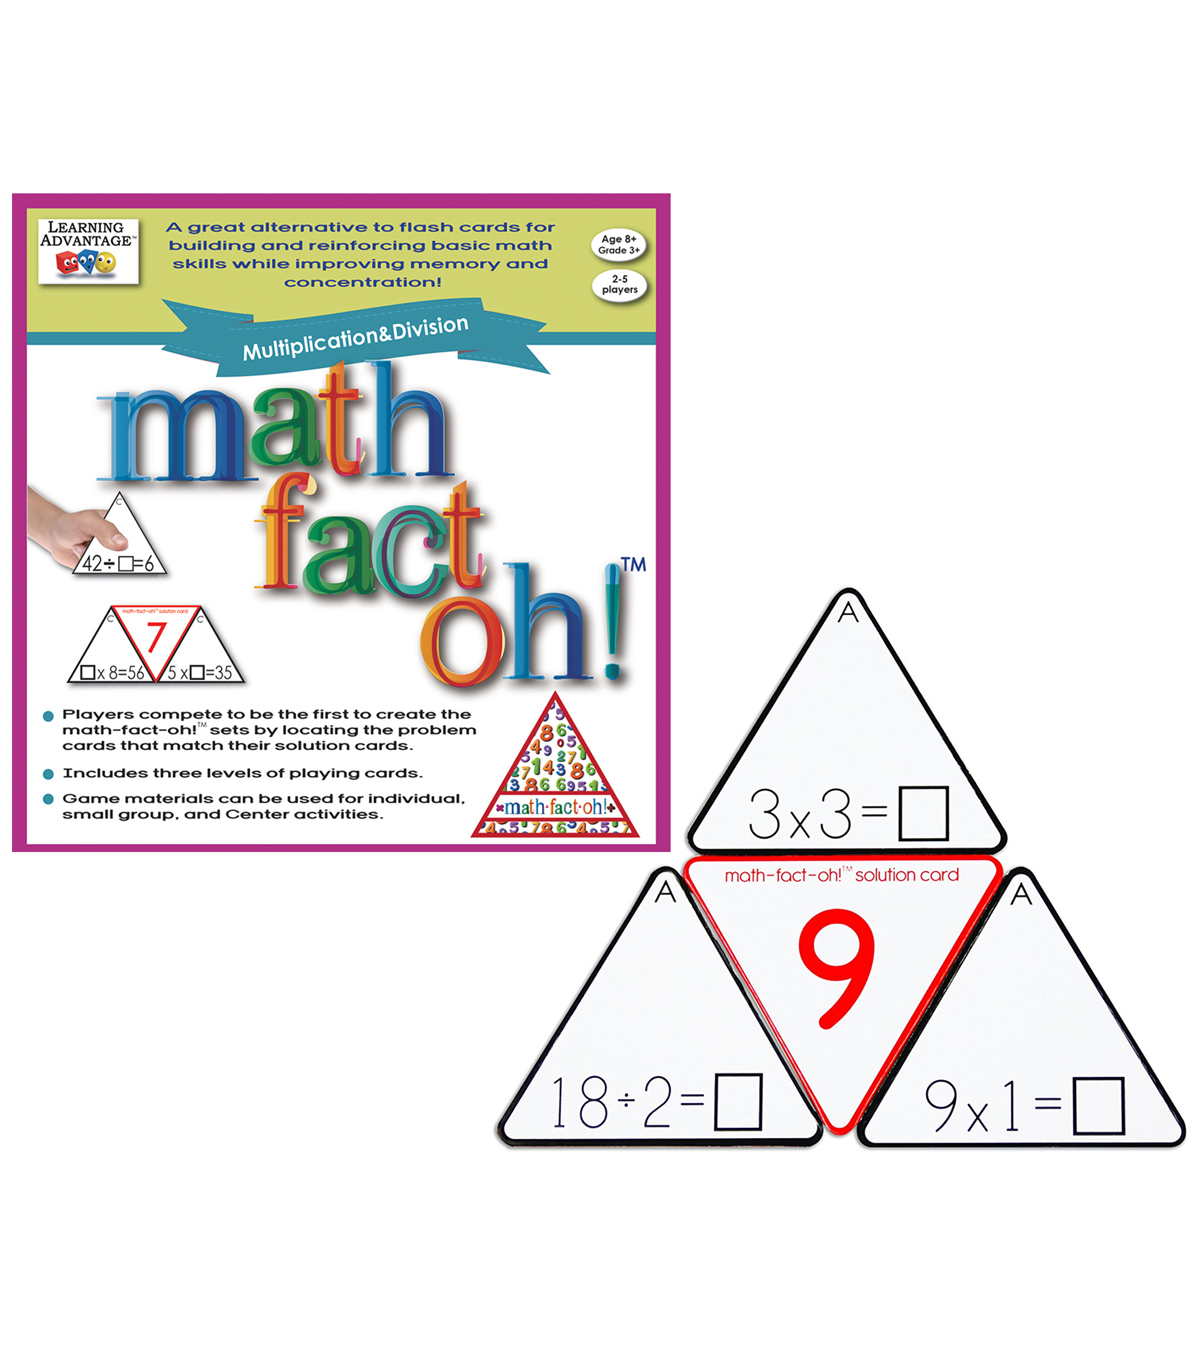 Learning Advantage math-fact-oh! Multiplication & Division Game